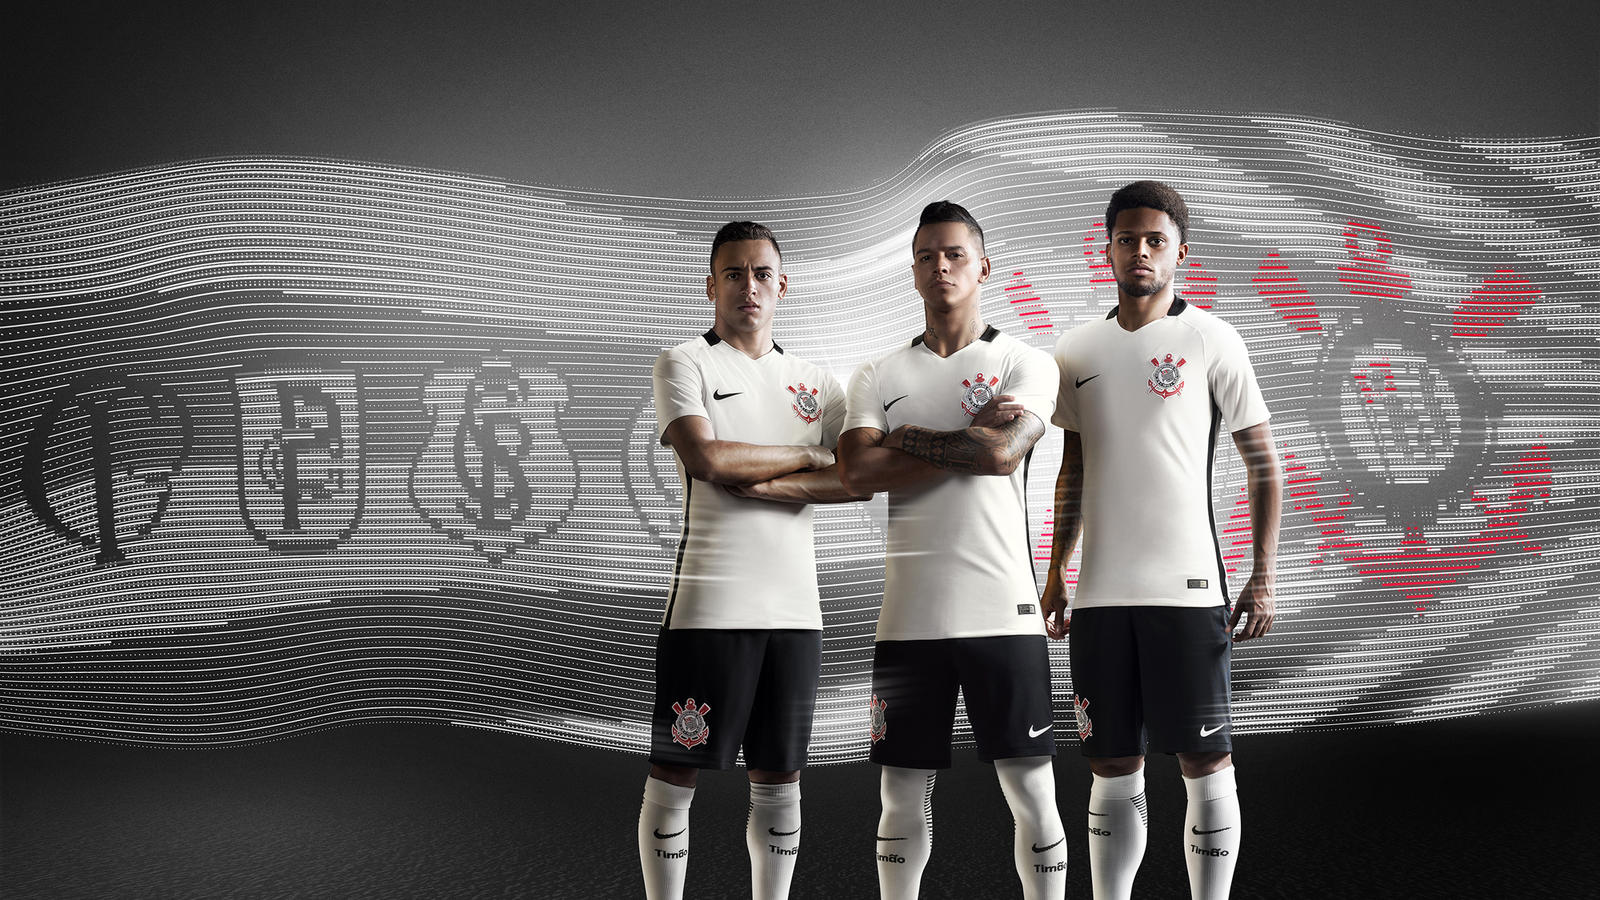 New nike sp16  brasil club kits corinthians amended 050616 final art hd 1600